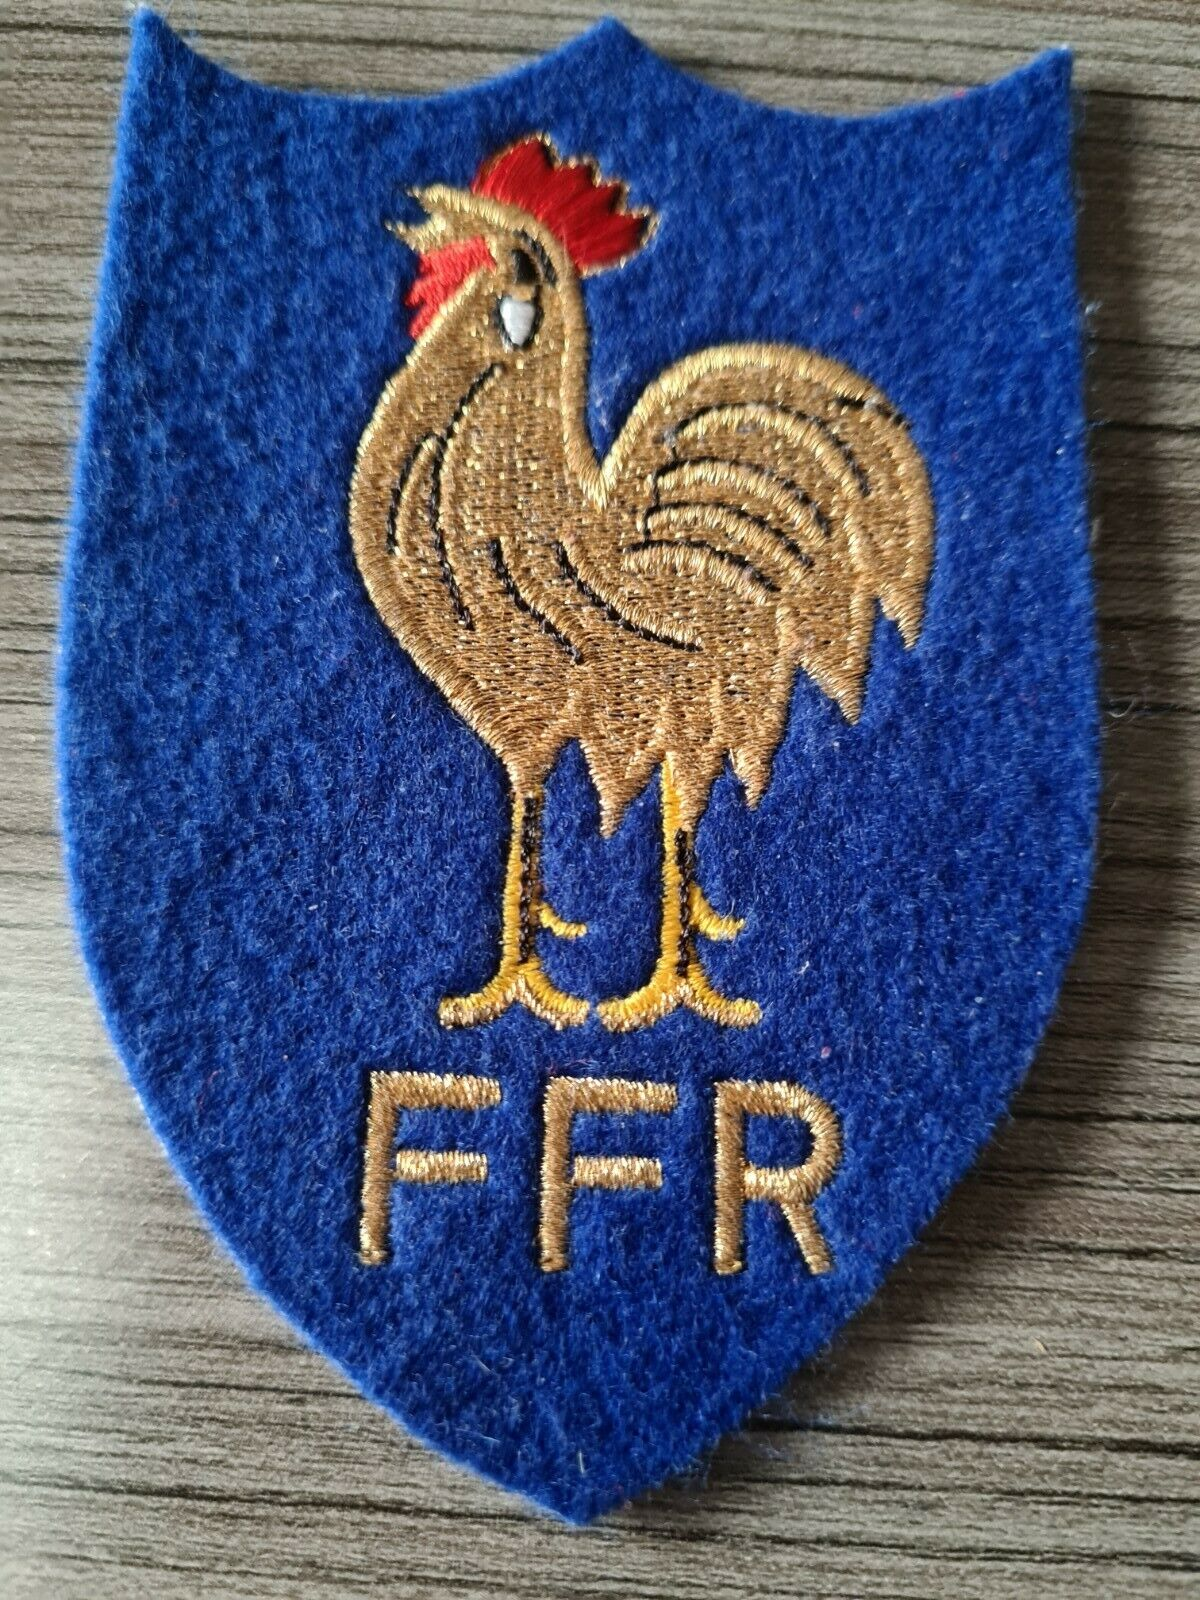 ECUSSON brodé EQUIPE FRANCE RUGBY embroidered blue BADGE 7,5cmx10,5cm